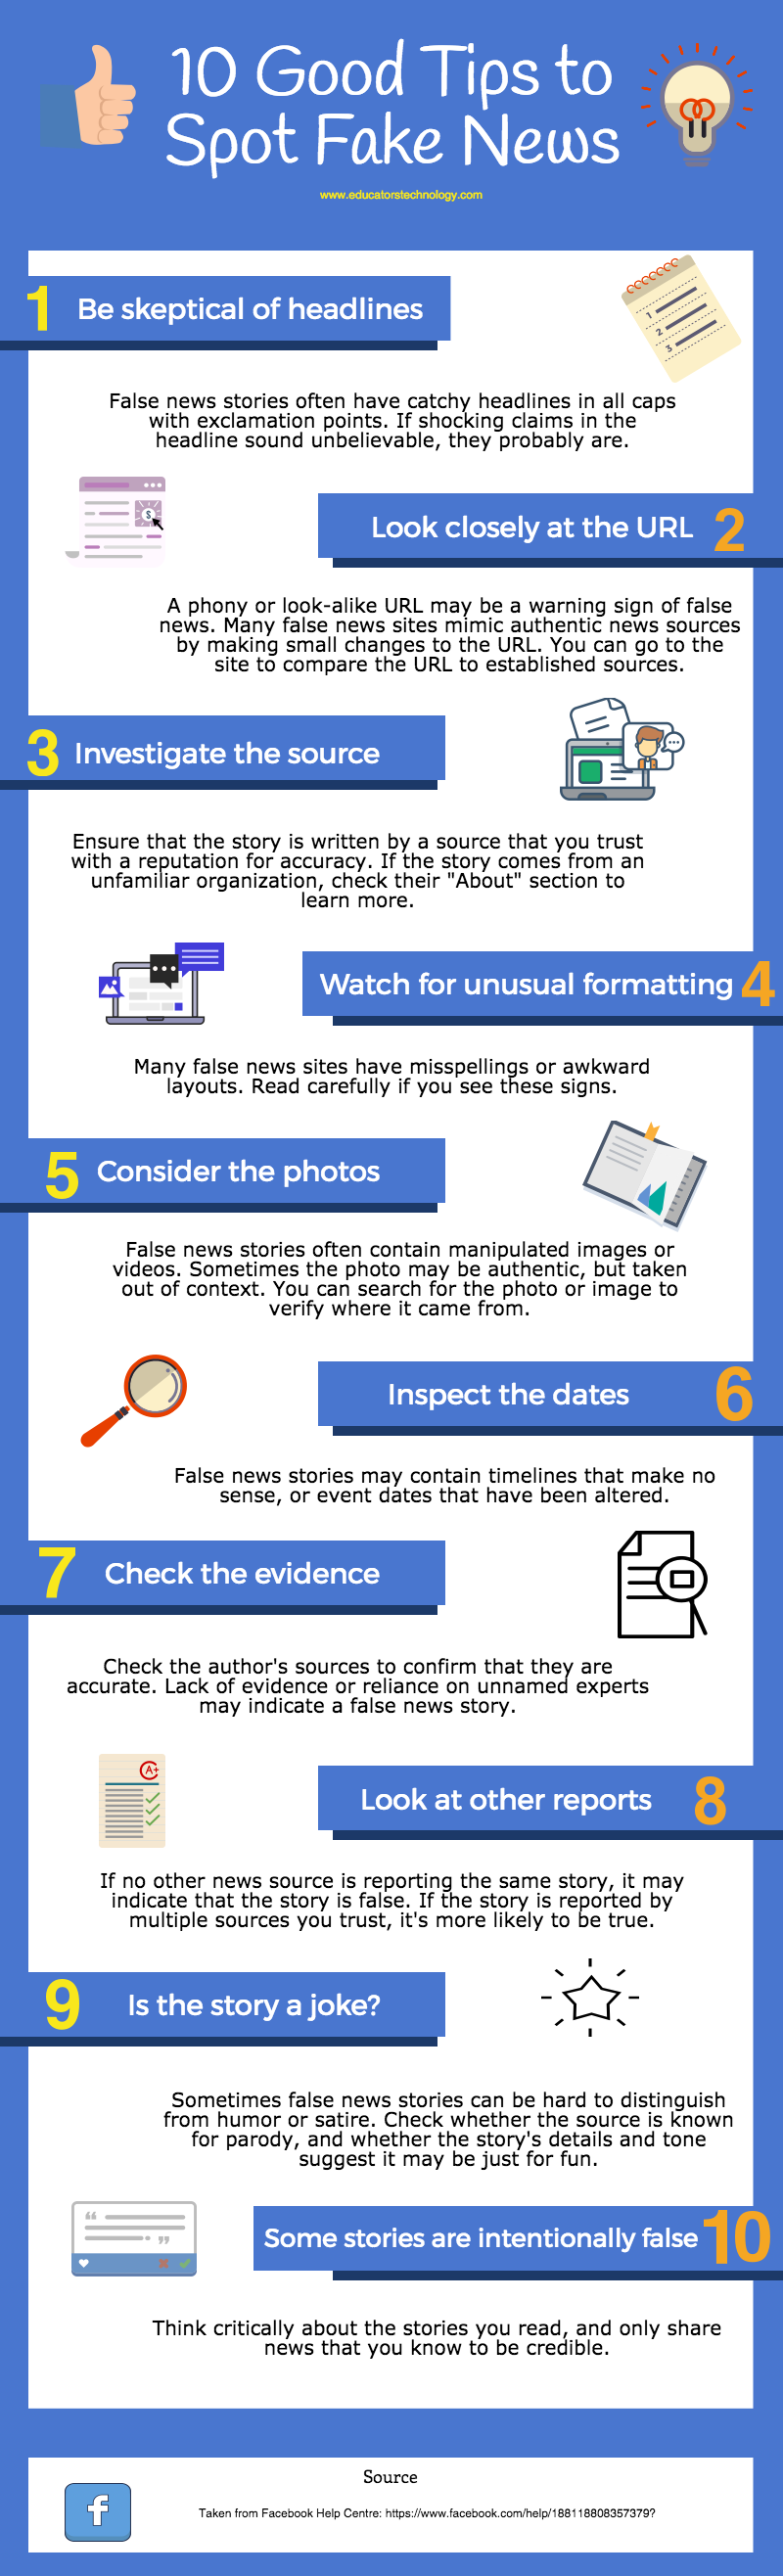 10 Good Tips To Spot Fake News